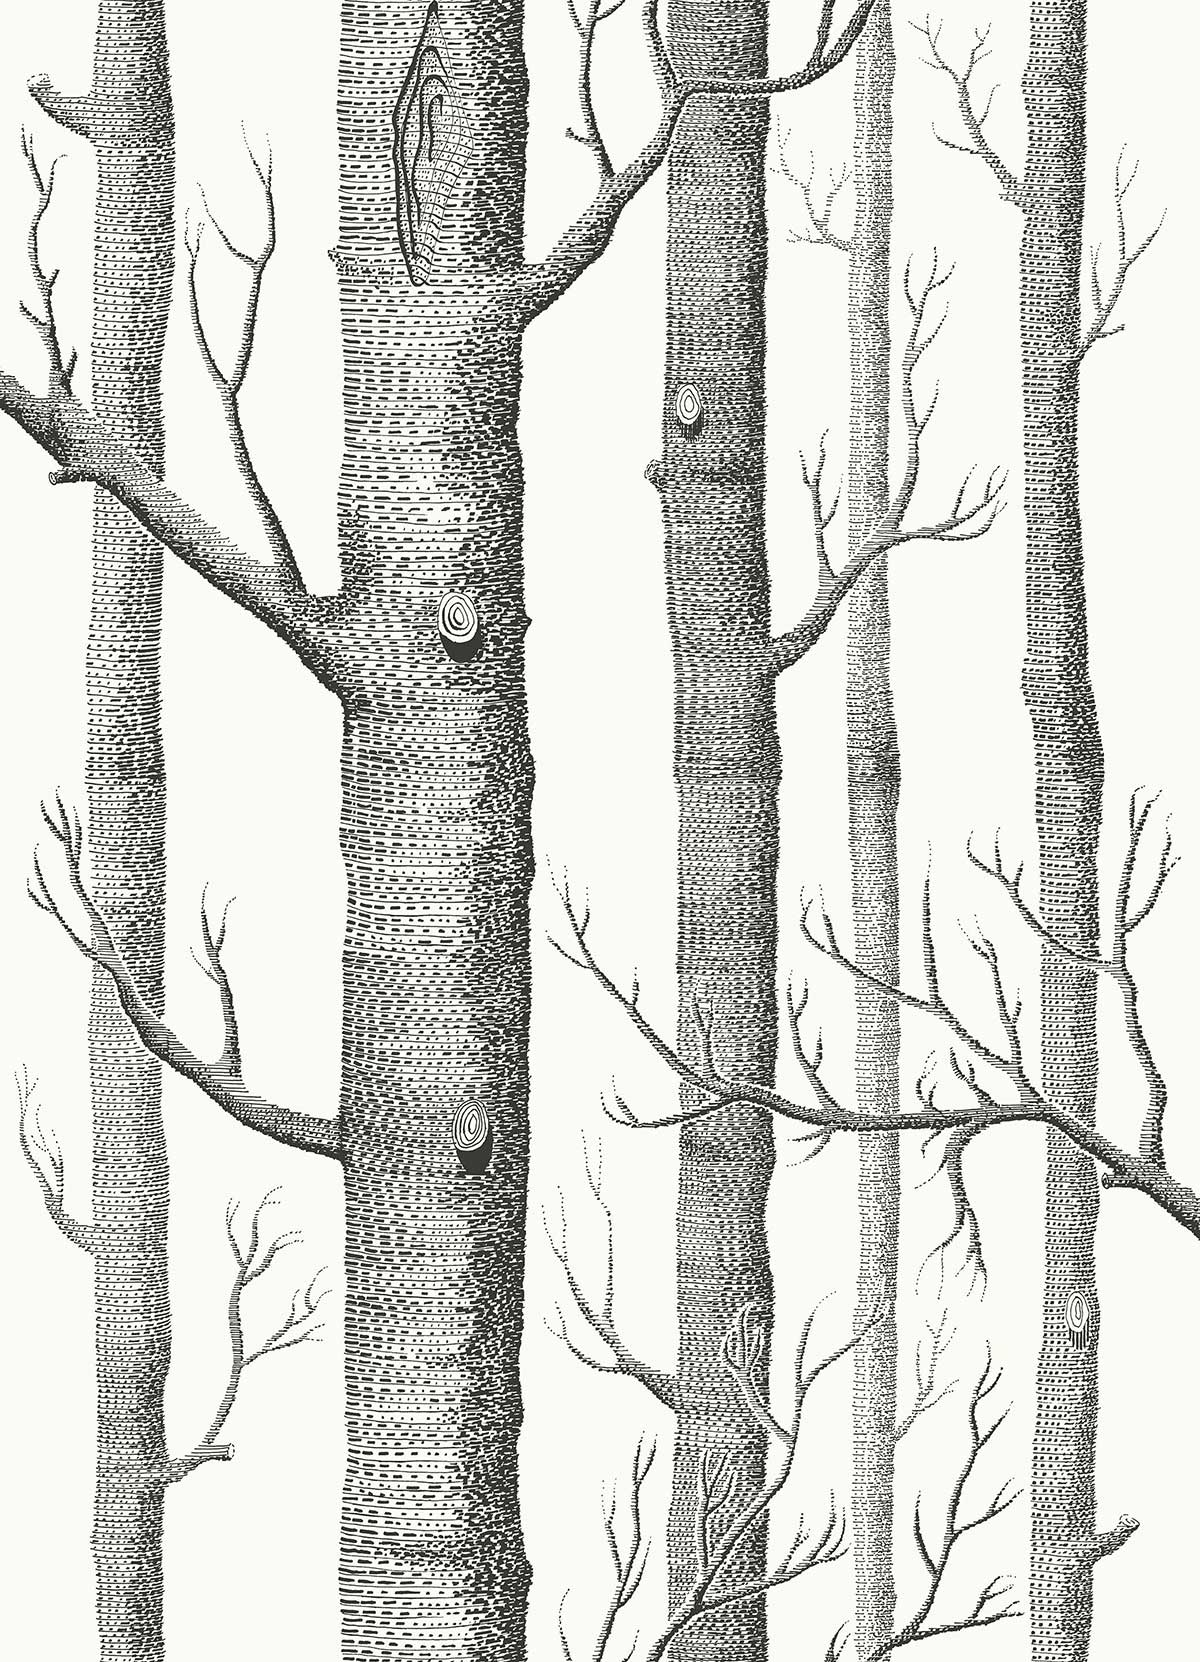 Cole & Son Woods Soot on Snow Fabric - Product code: F111/7026LU